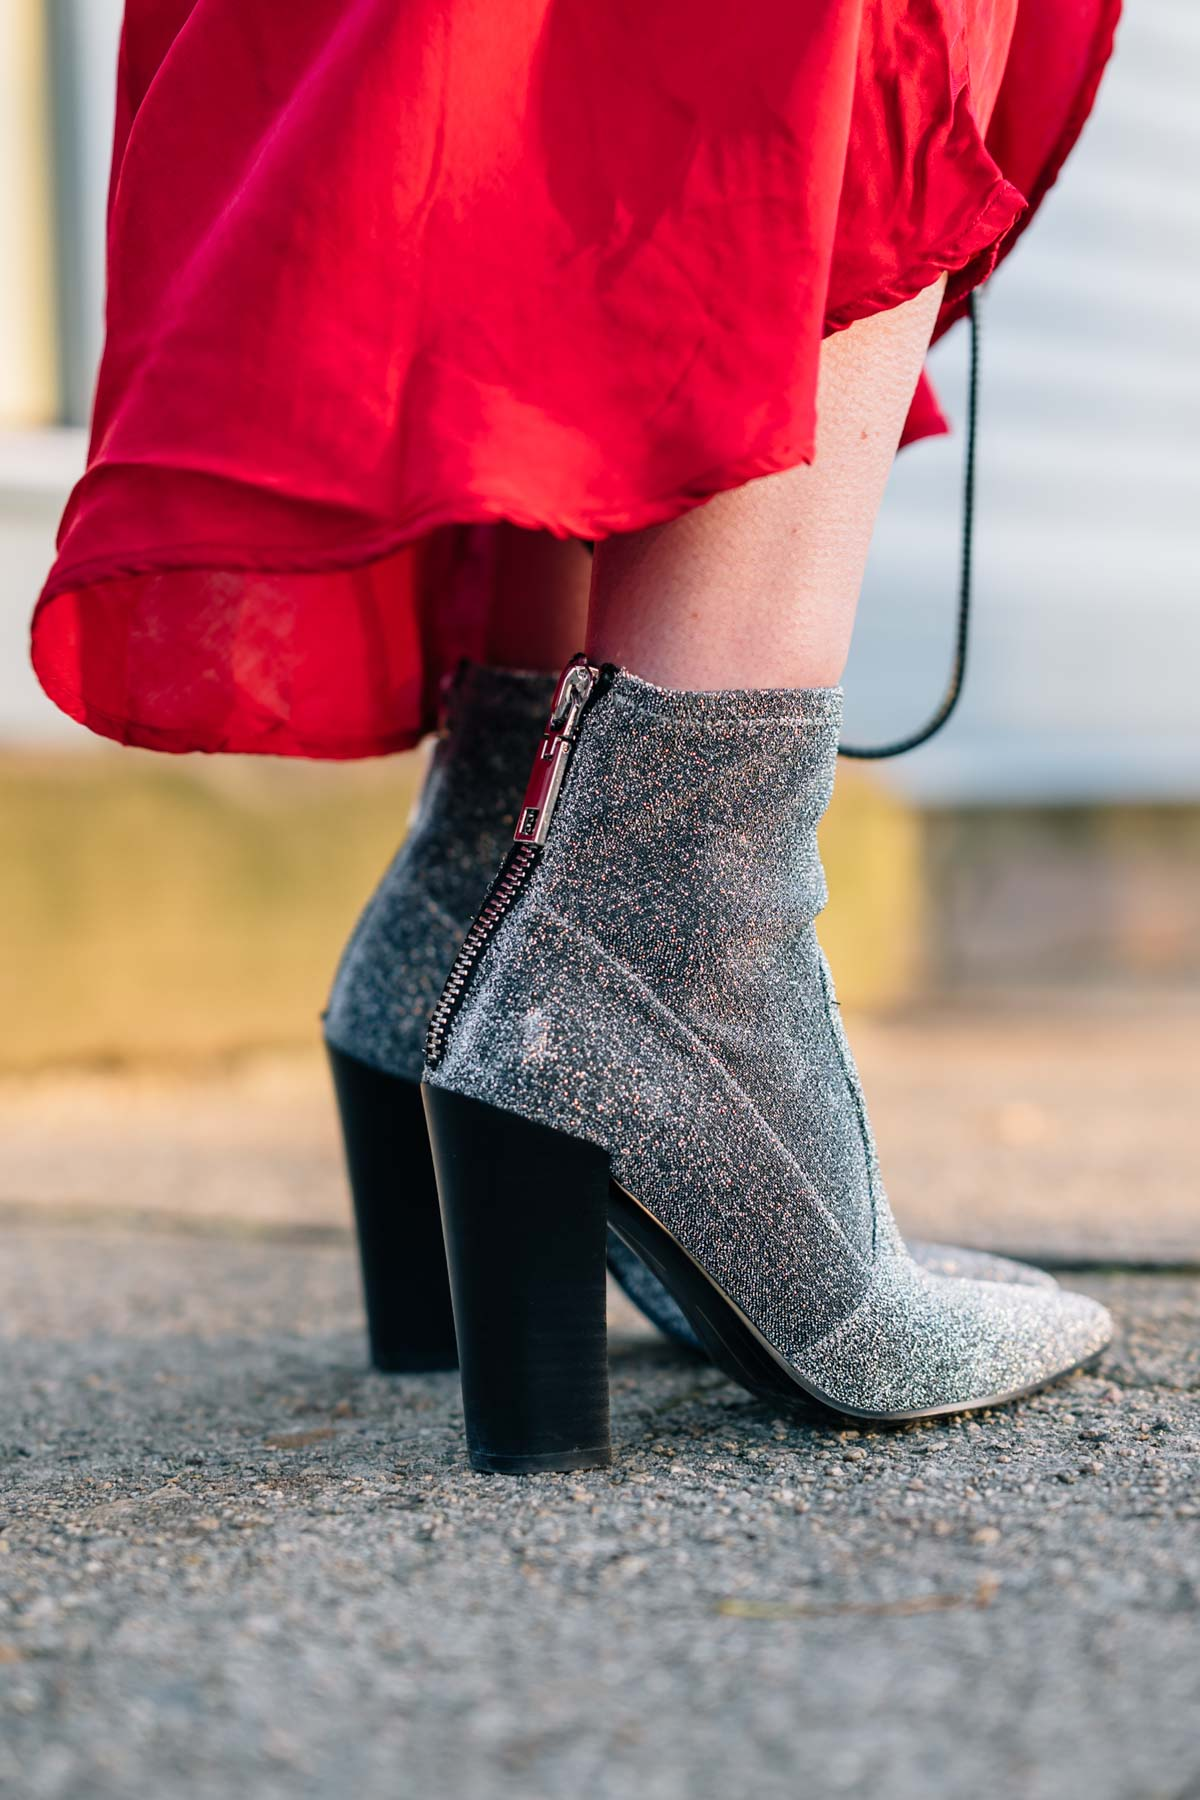 Jess Ann Kirby wears Dolce Vita elana stretch booties for a holiday look